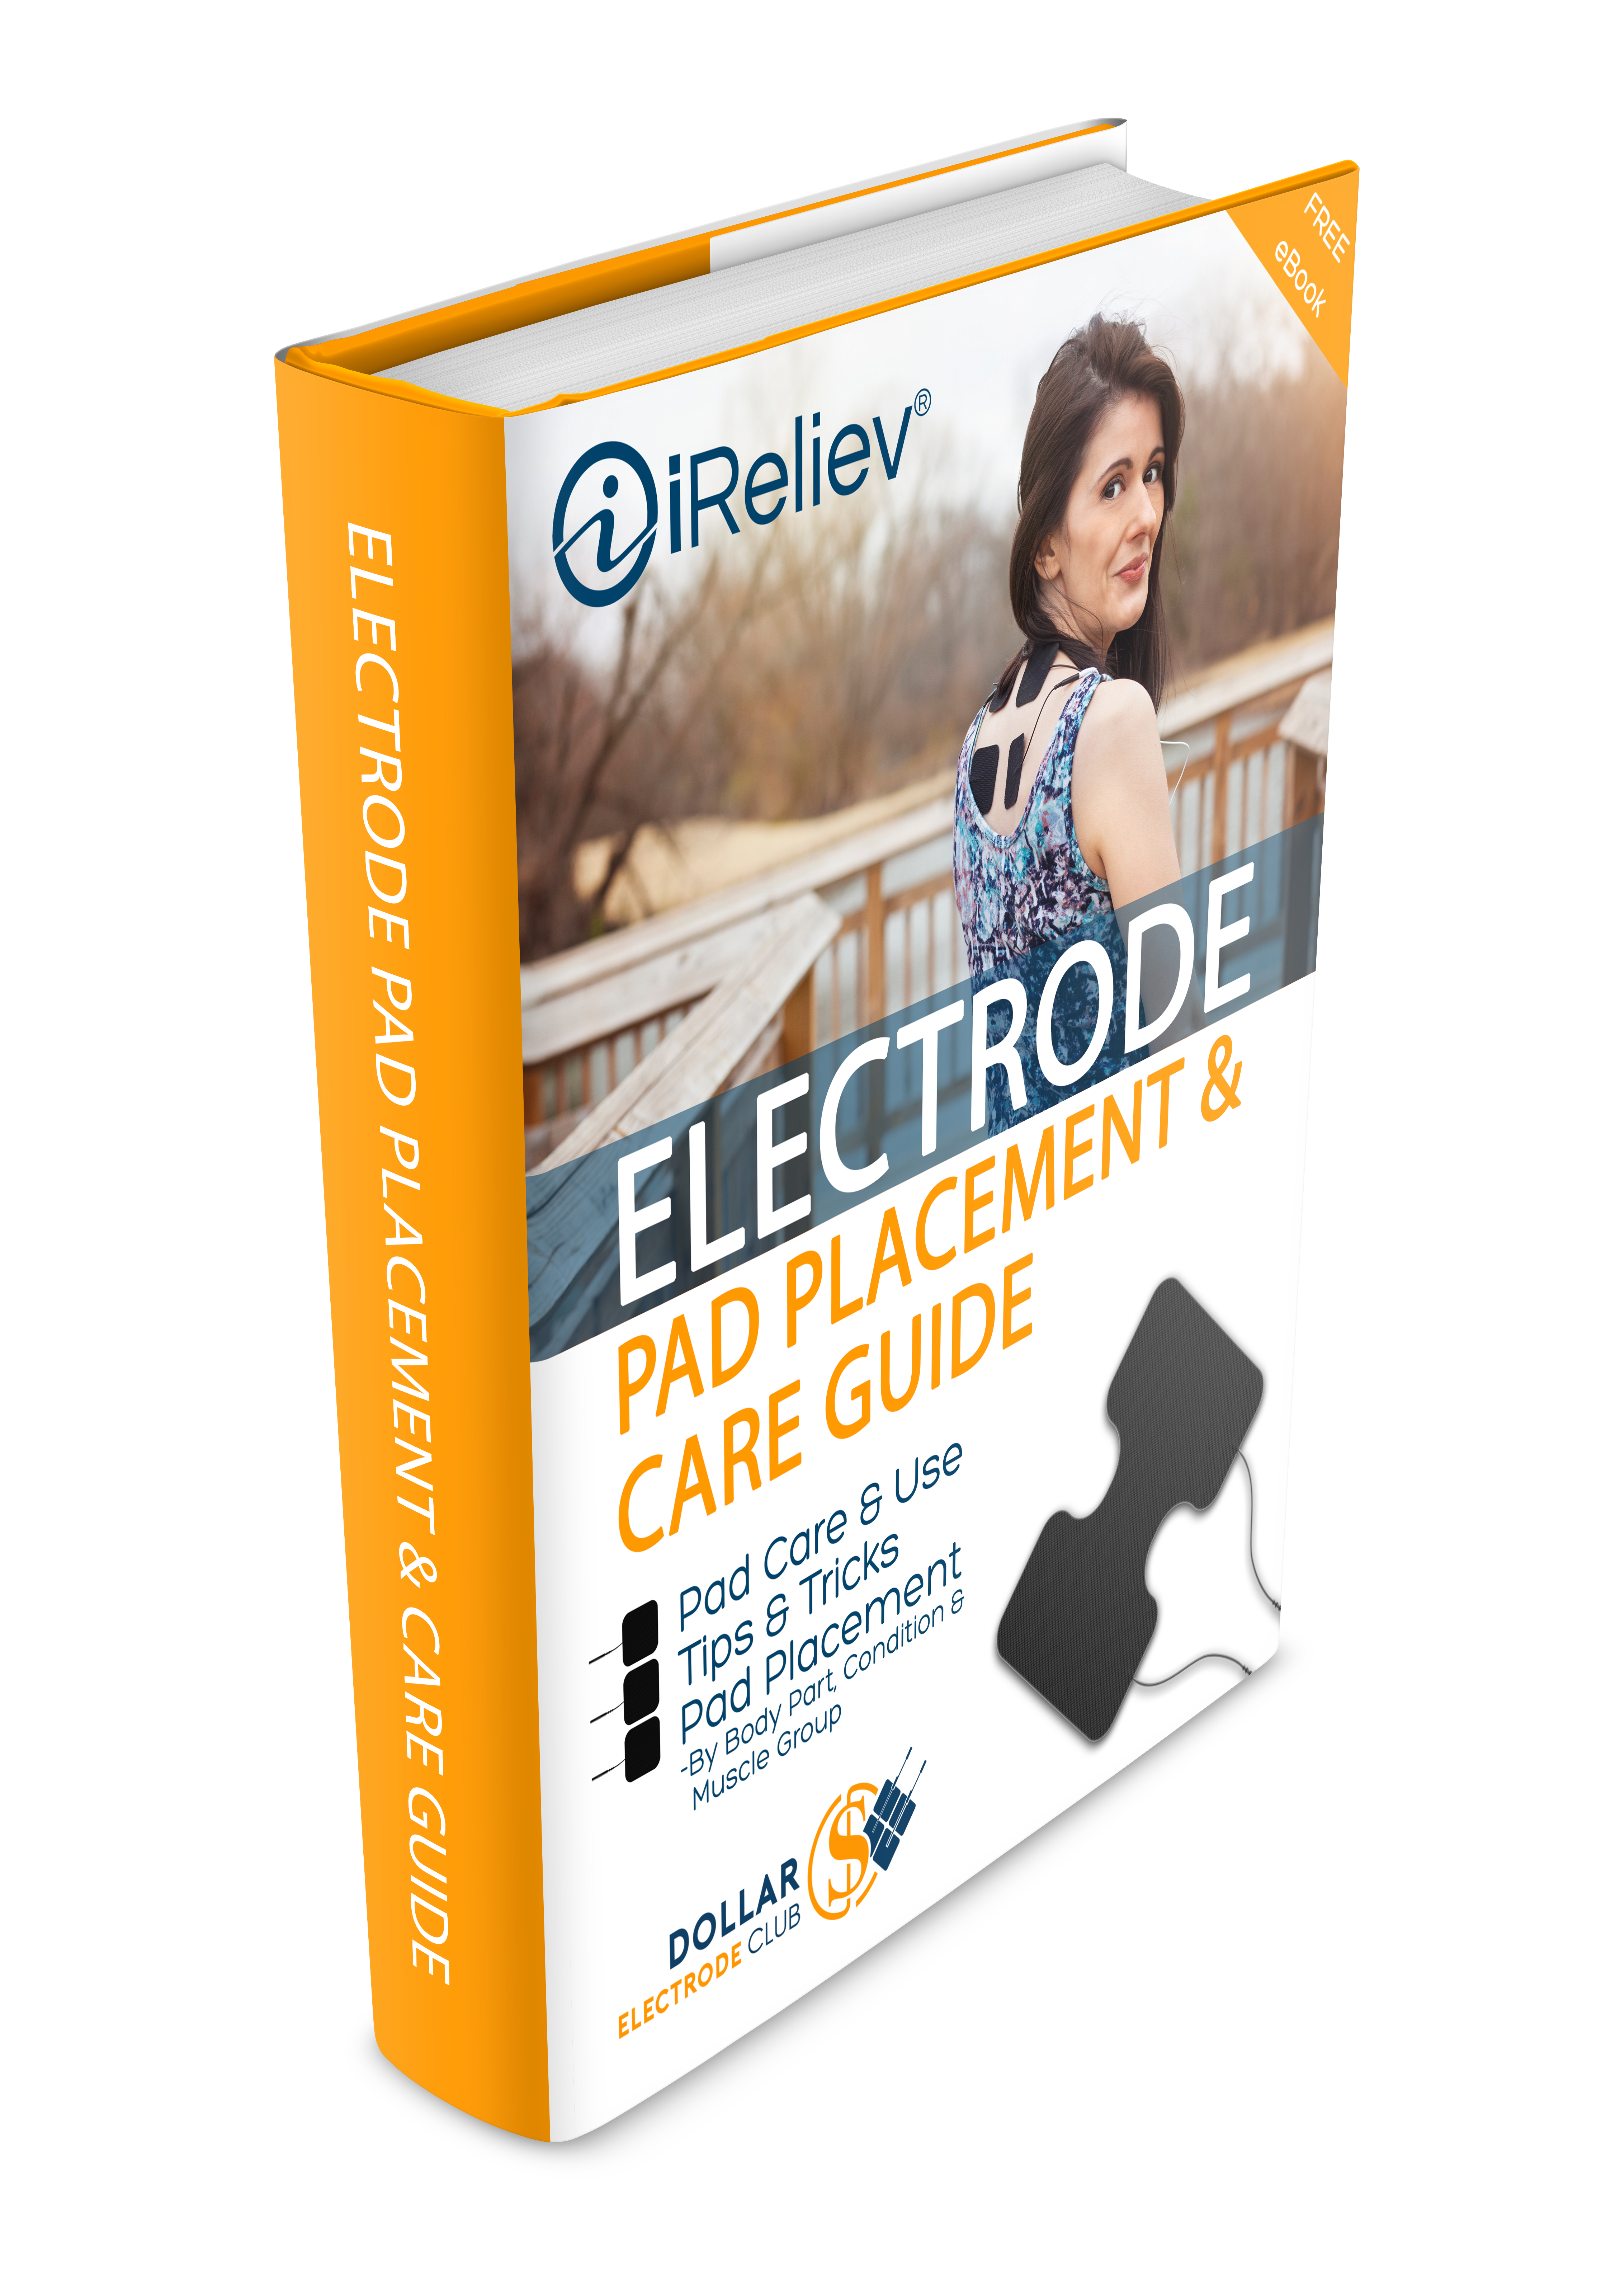 electrode pad placement and care guide 3d render 2.png